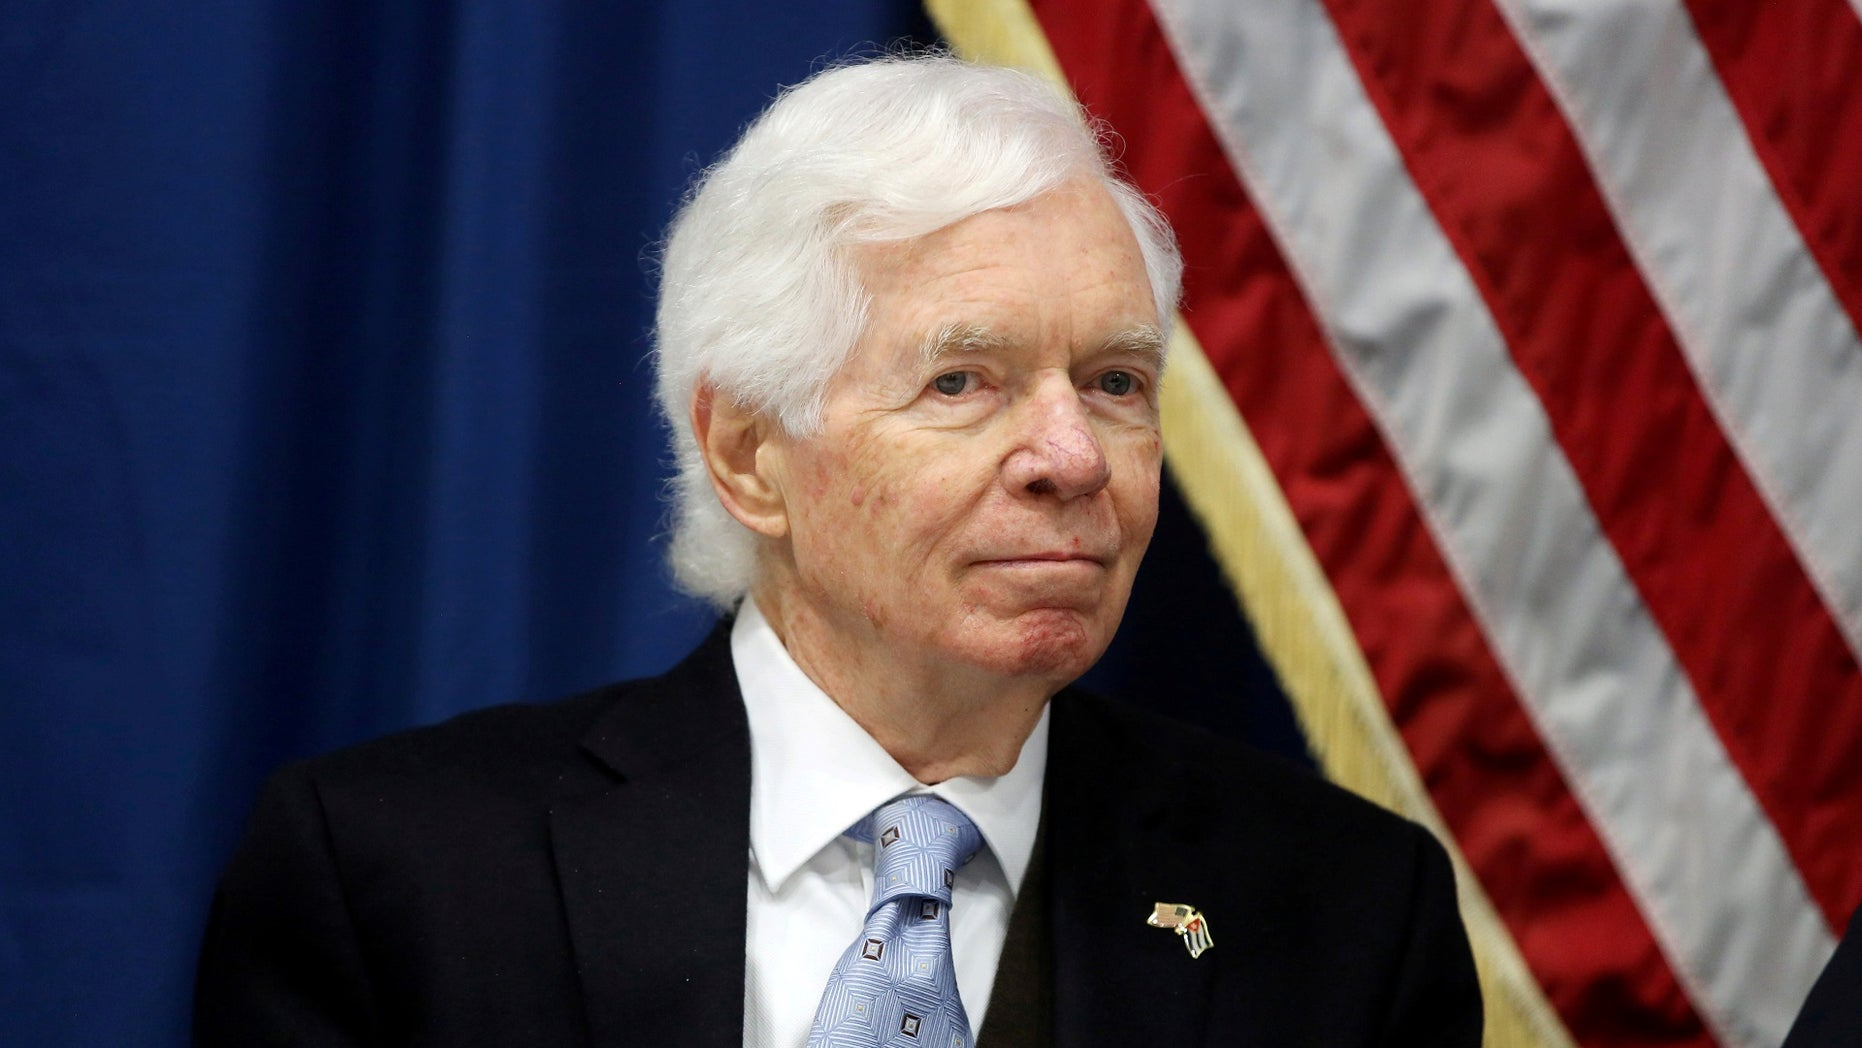 Sen. Thad Cochran announced that he will resign from his seat effective April 1. Mississippi Gov. Phil Bryant, a Republican, will appoint his replacement.